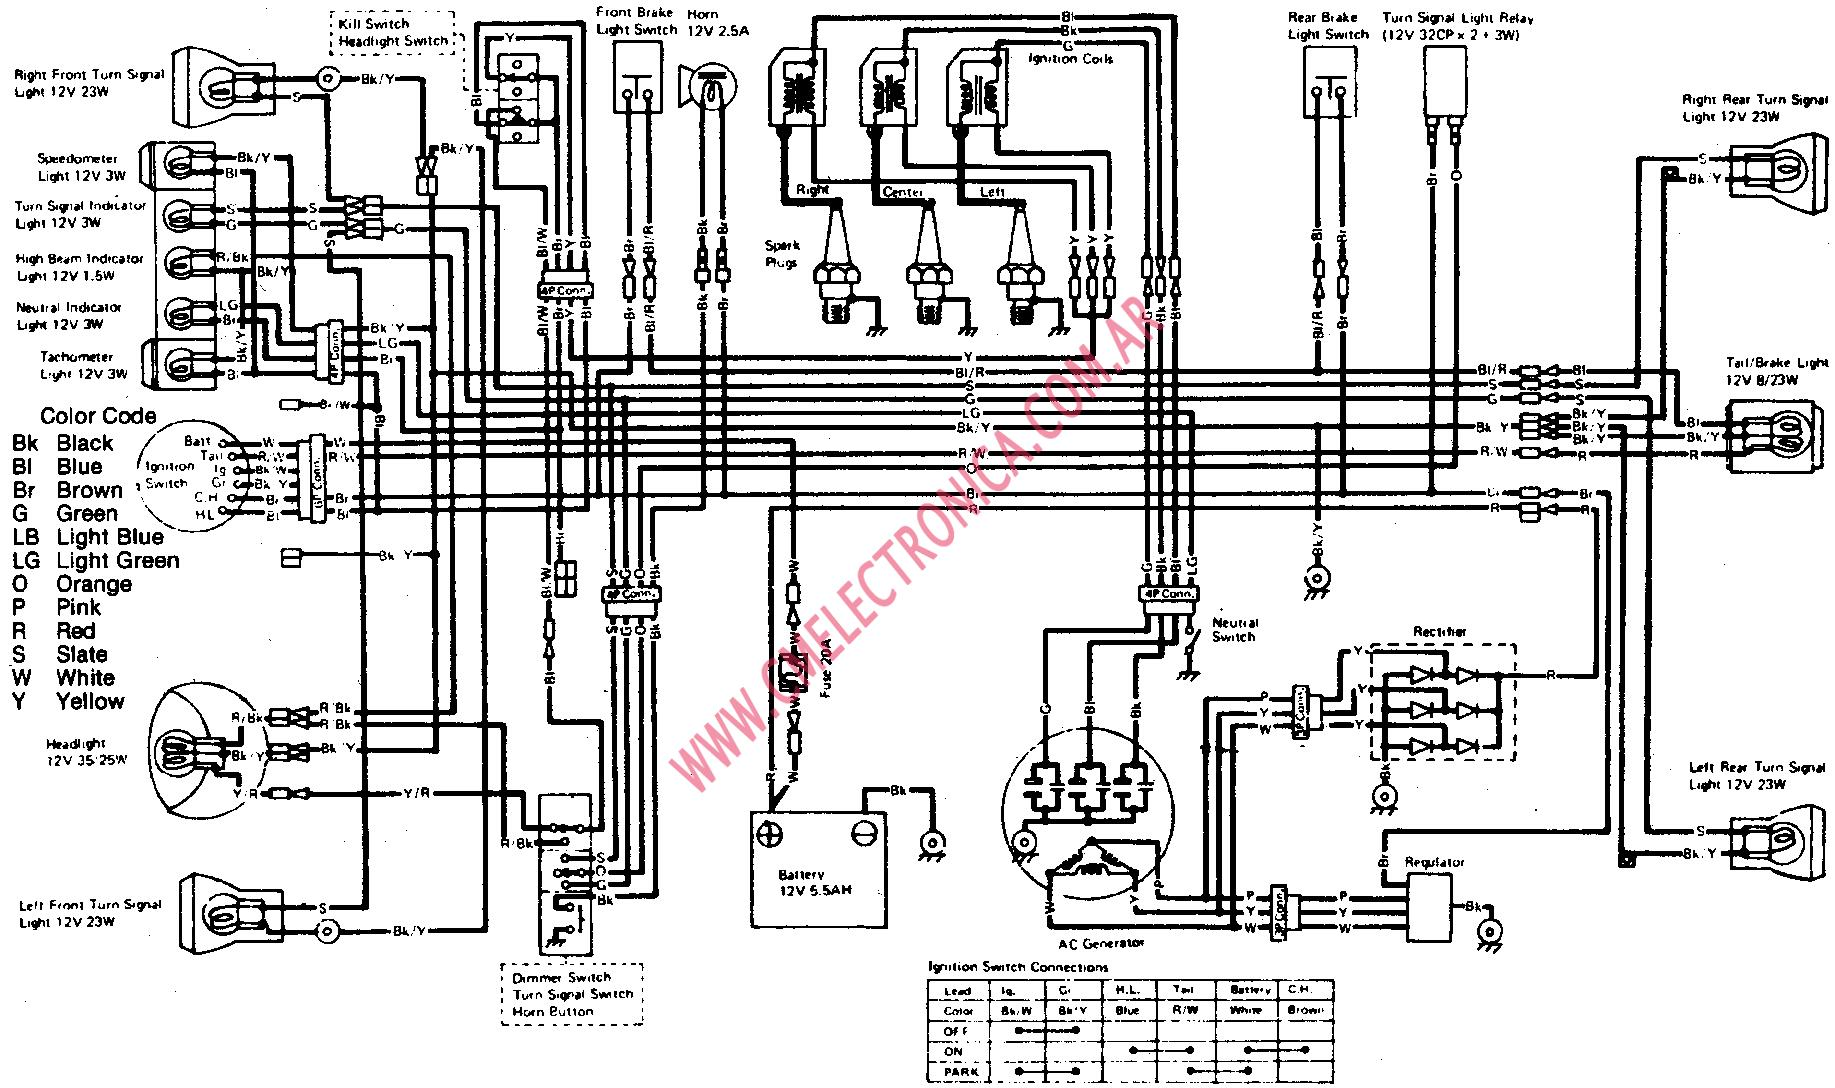 chrysler 300 3 5 engine diagram  chrysler  free engine